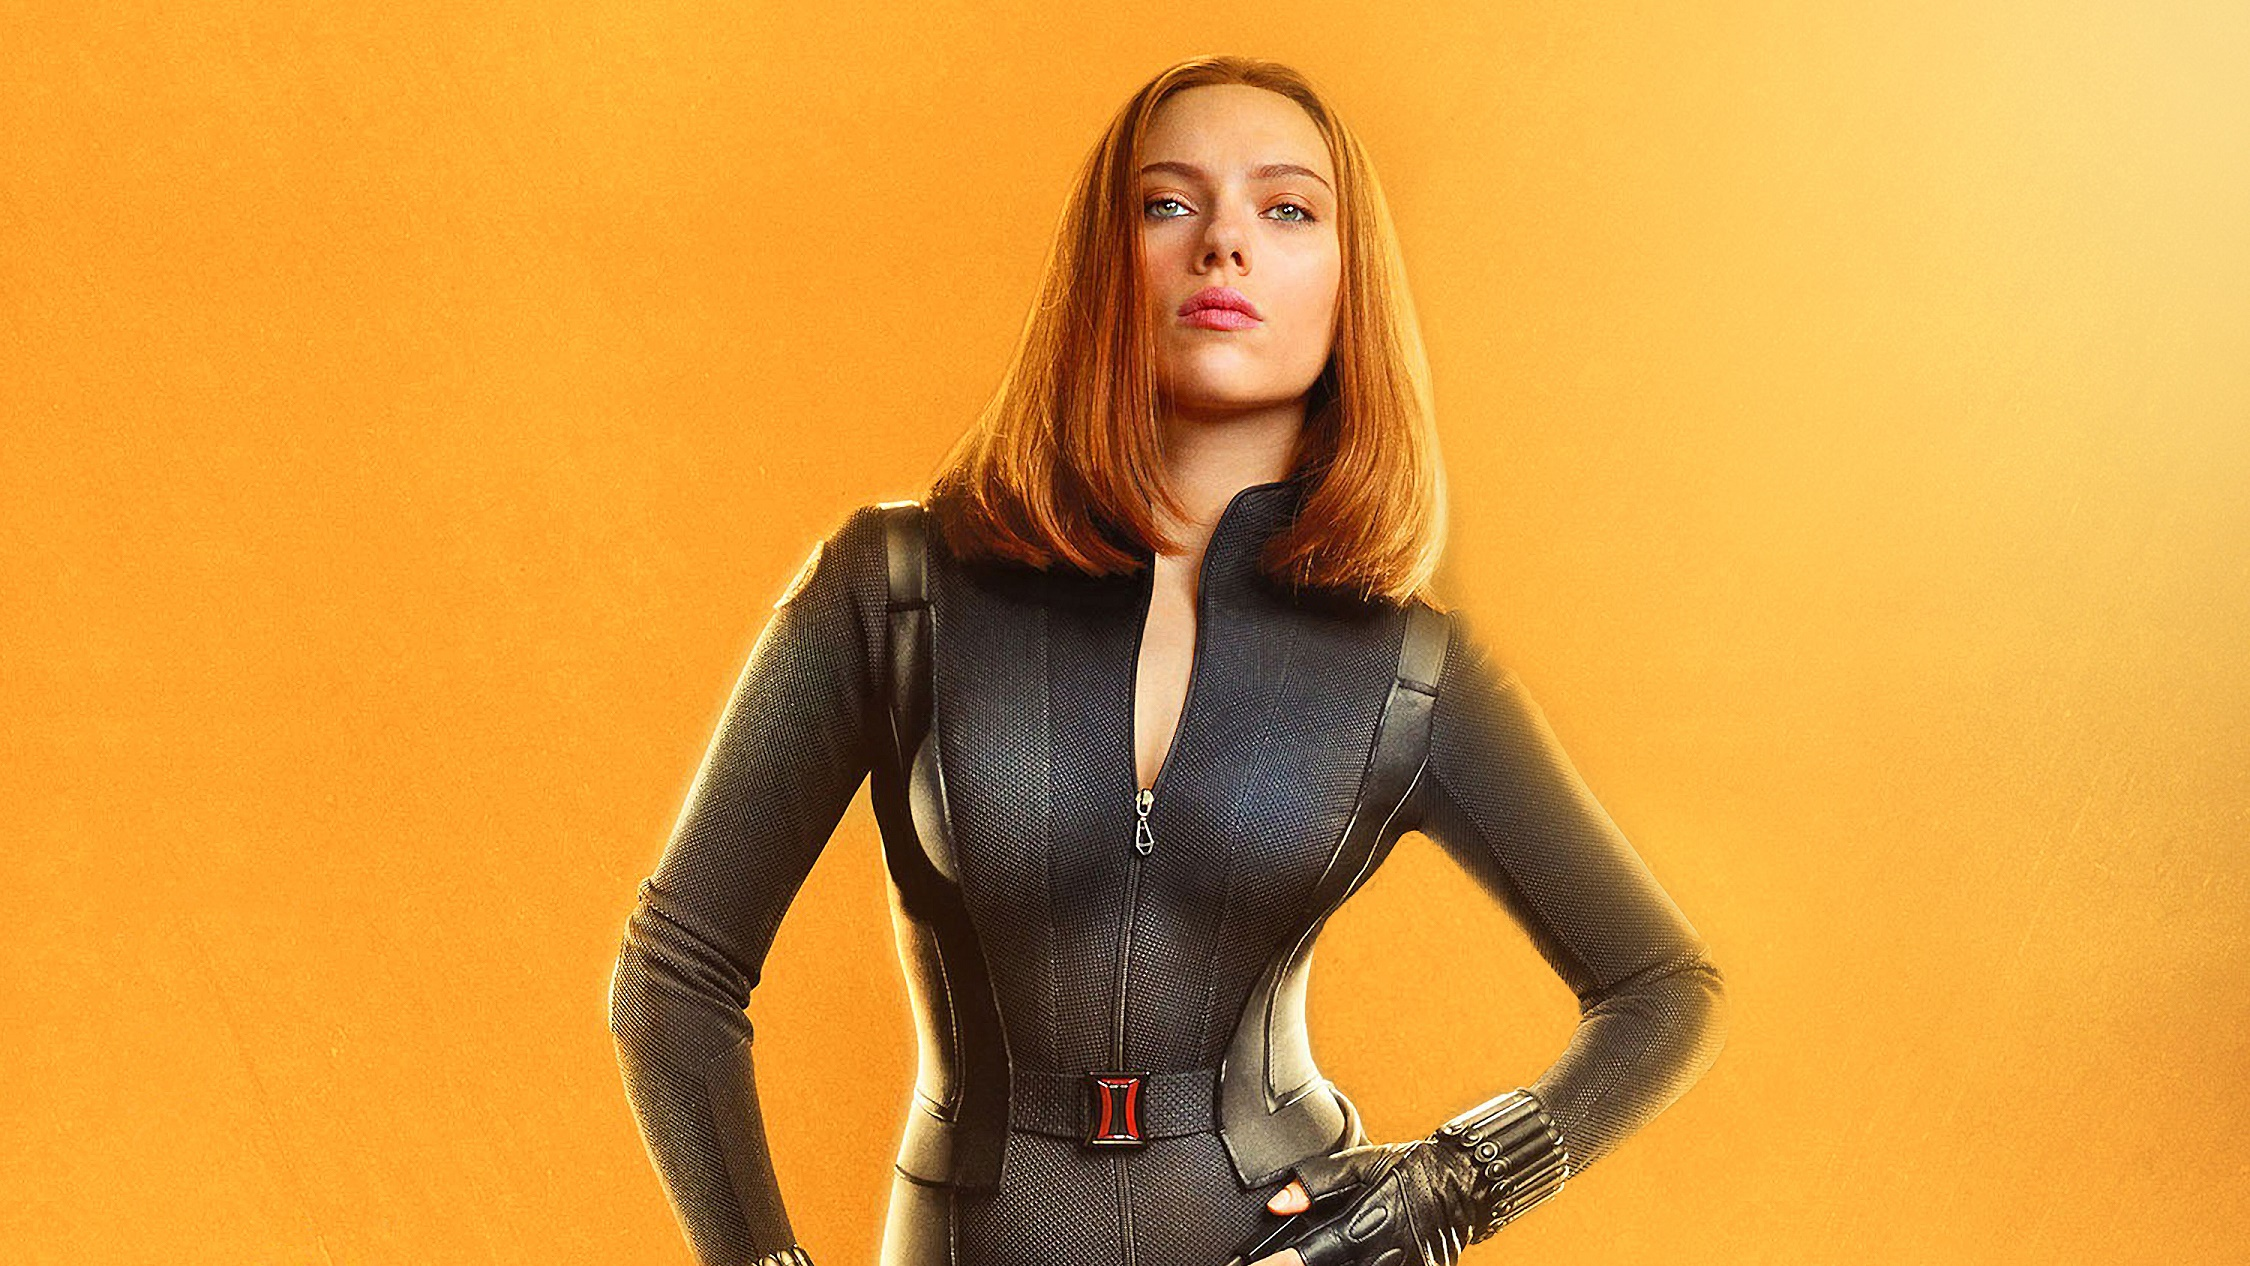 Black Widow Trailer Leaks Second Trailer Timings, Footage Description and Robert Downey Jr. Cameo